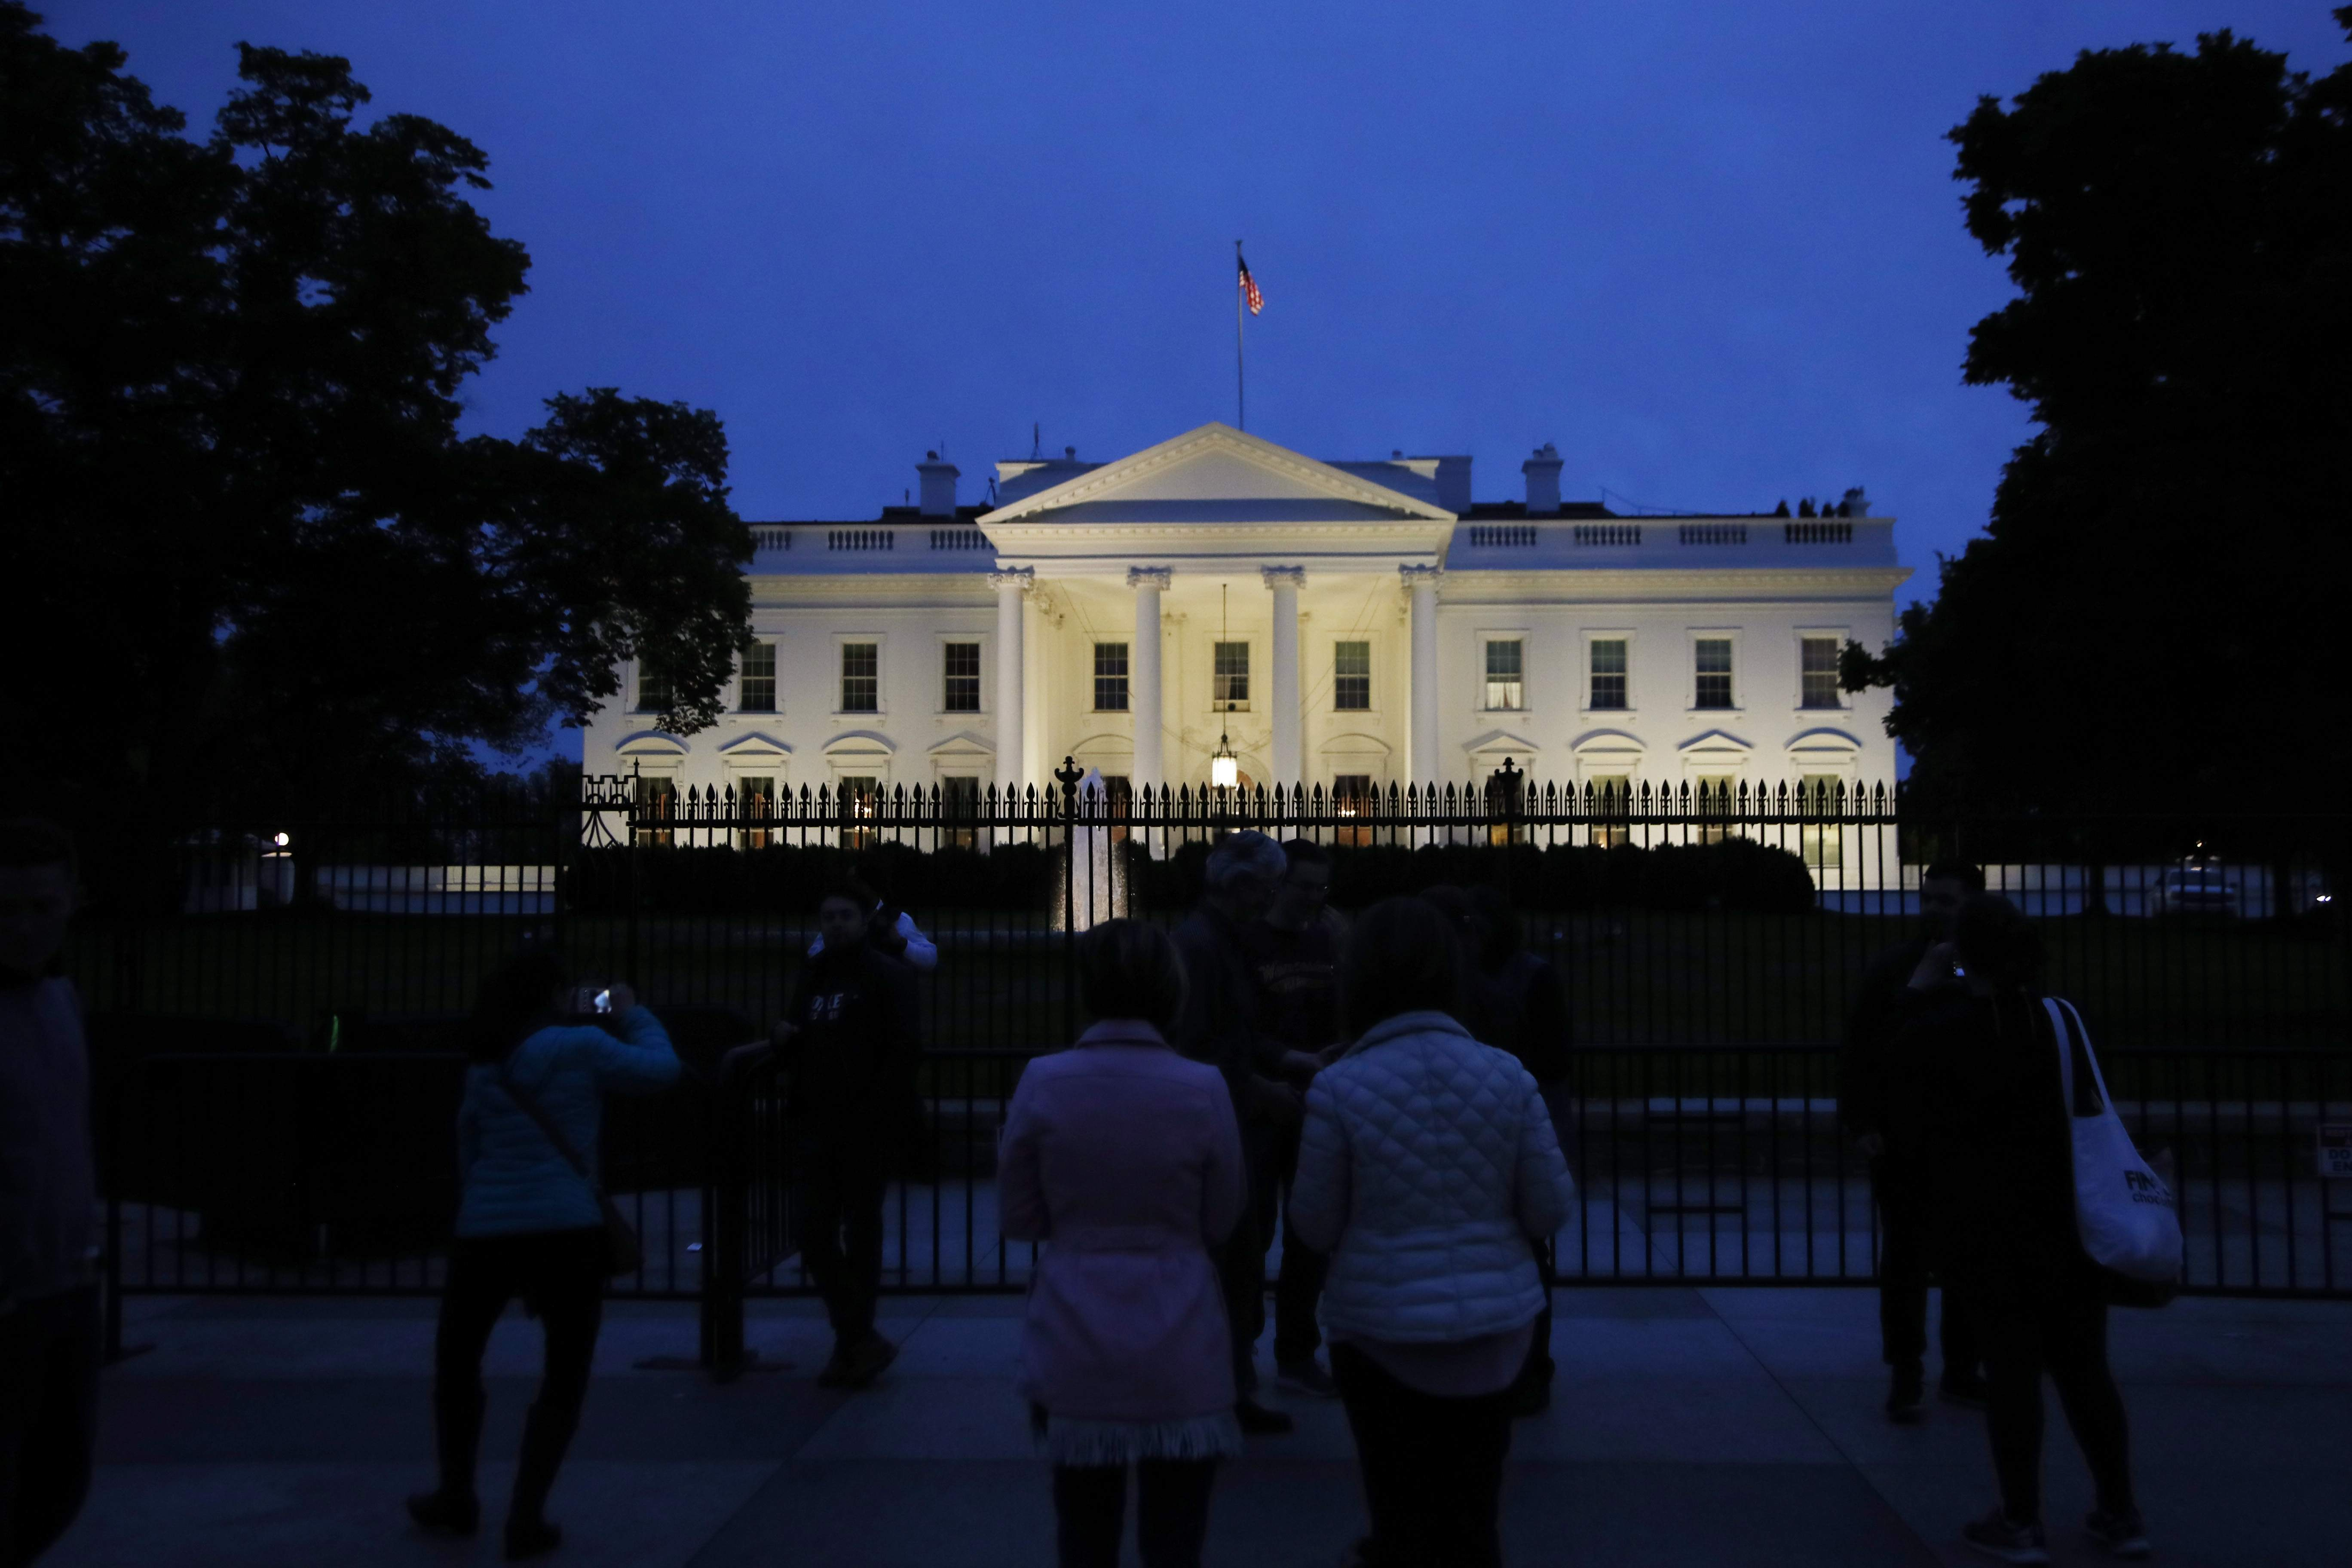 DAY 94 - In this April 23, 2017, file photo, The White House in Washington. The president stayed in town for the weekend but did not hold any public events on day 94 and was not photographed. (AP Photo/Manuel Balce Ceneta, File)